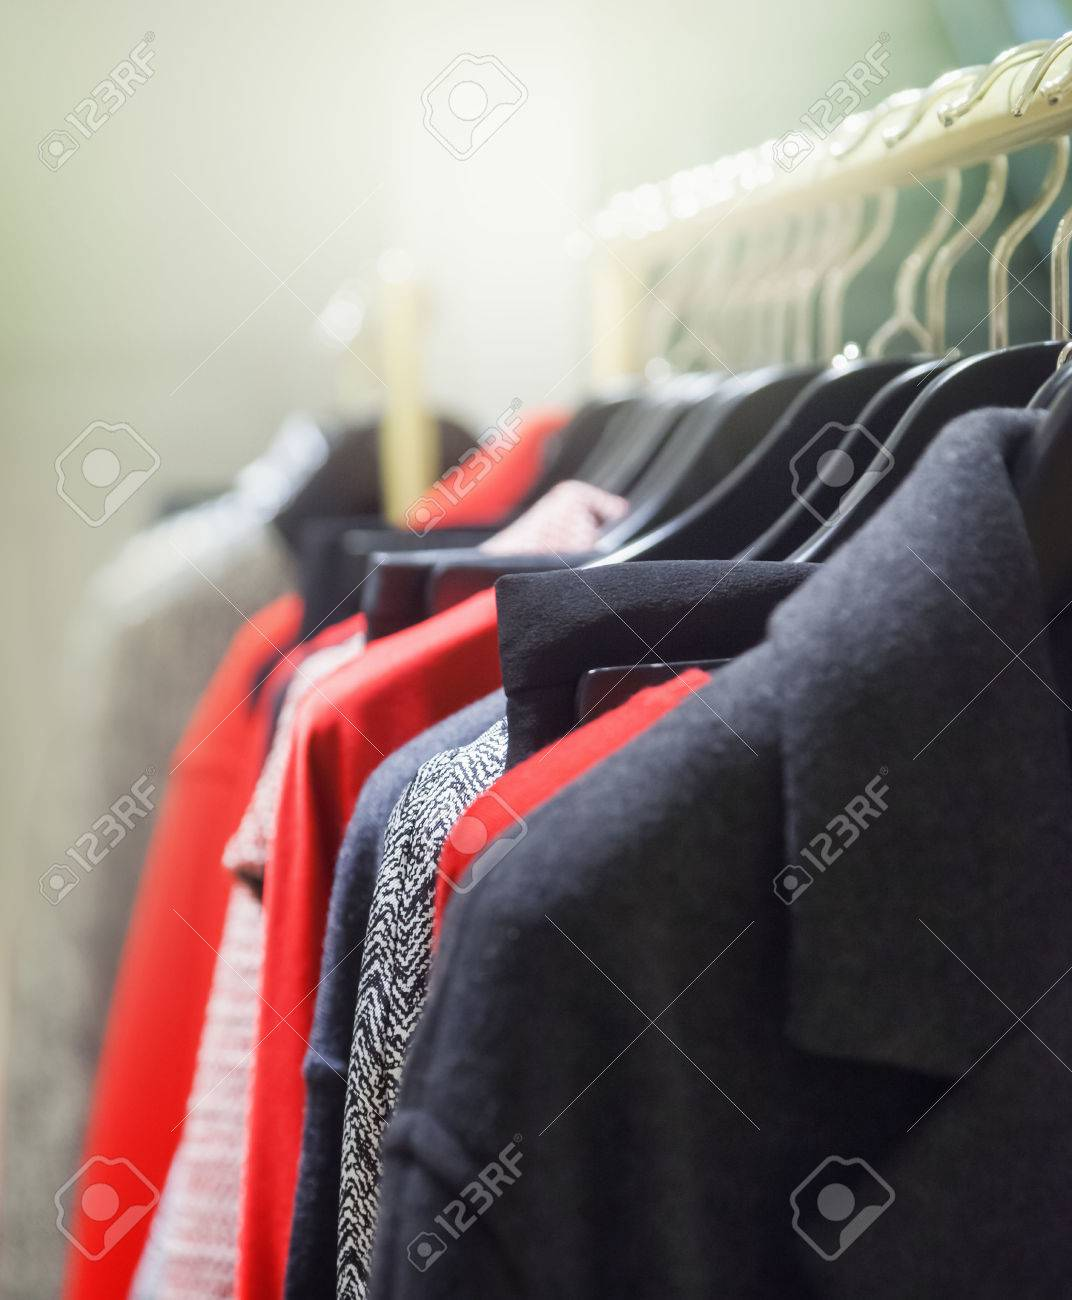 A row of clothes hanging on the rack - 46425138